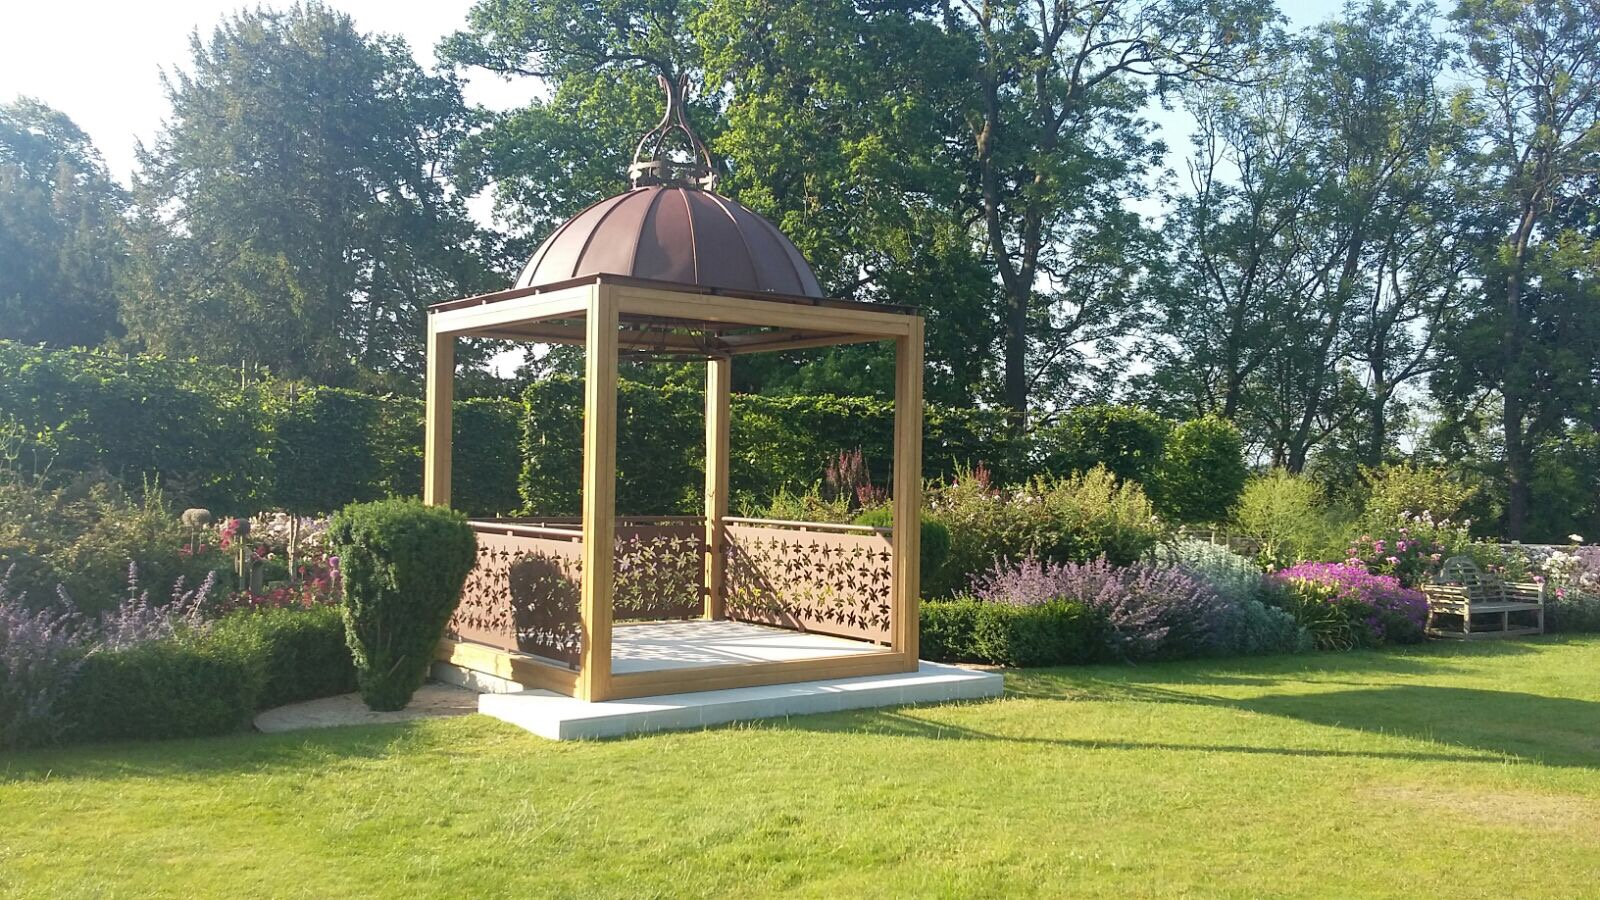 The Wood Norton's New Outdoor Wedding Pavilion